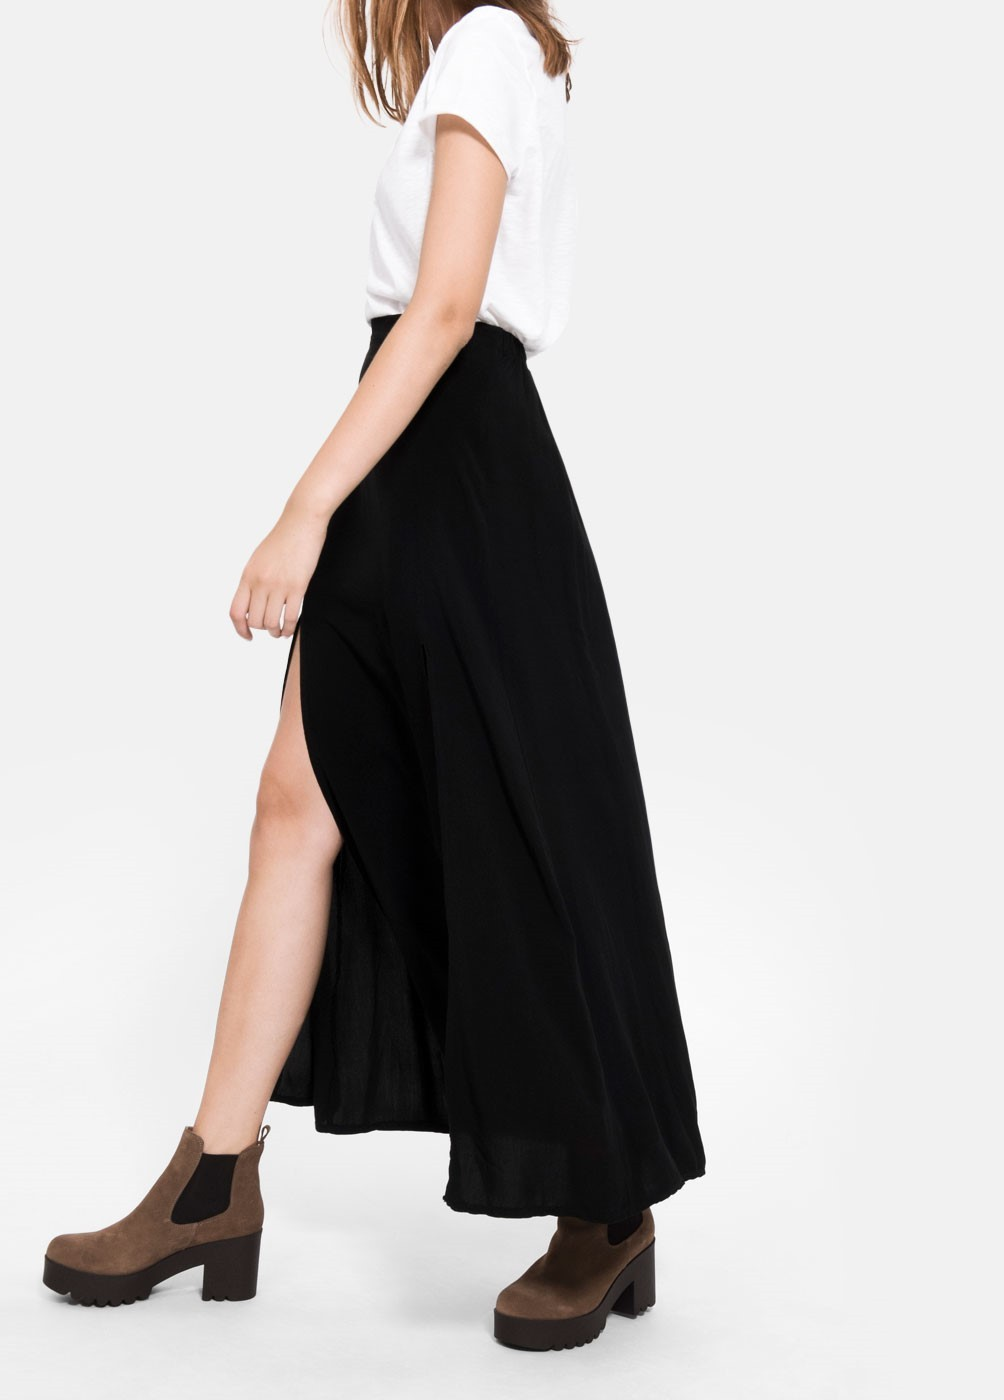 CELINE SKIRT WITH SIDE SLITS